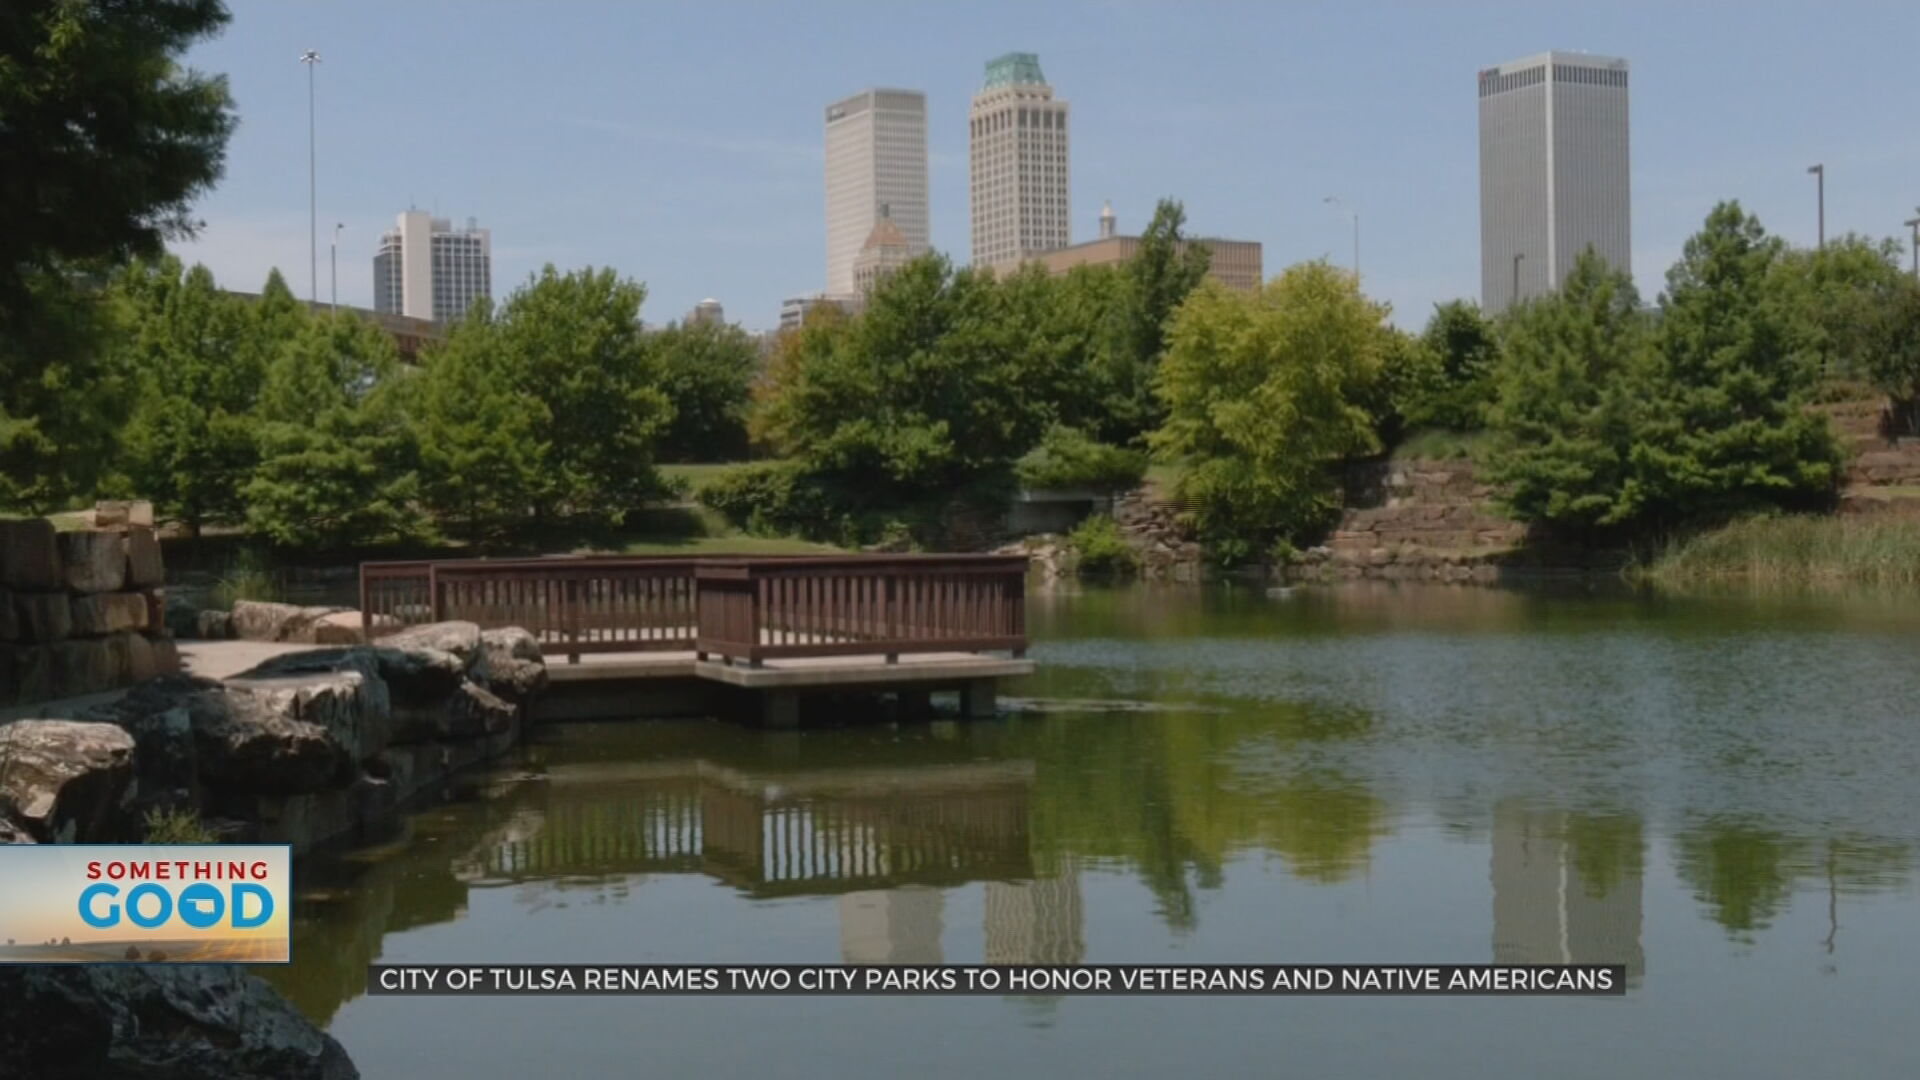 City Of Tulsa To Rename 2 Parks, Acknowledging History Of Native Americans & Veterans